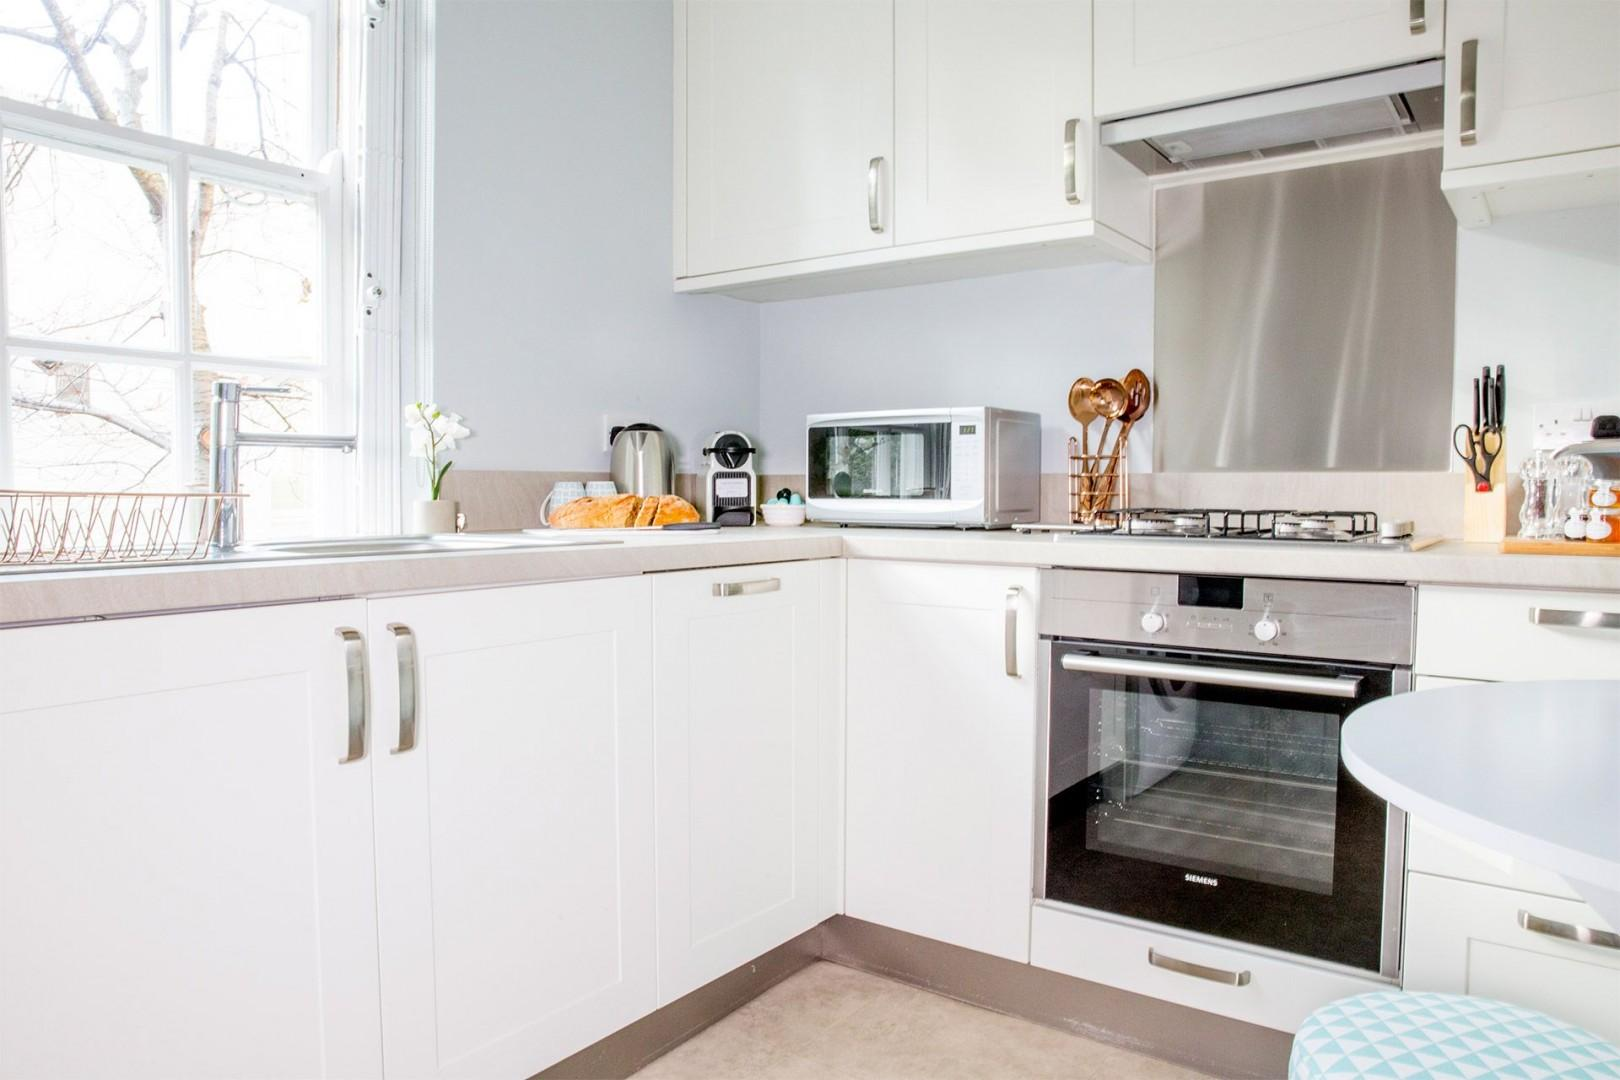 Kitchen is fully equipped with everything you need to cook at home